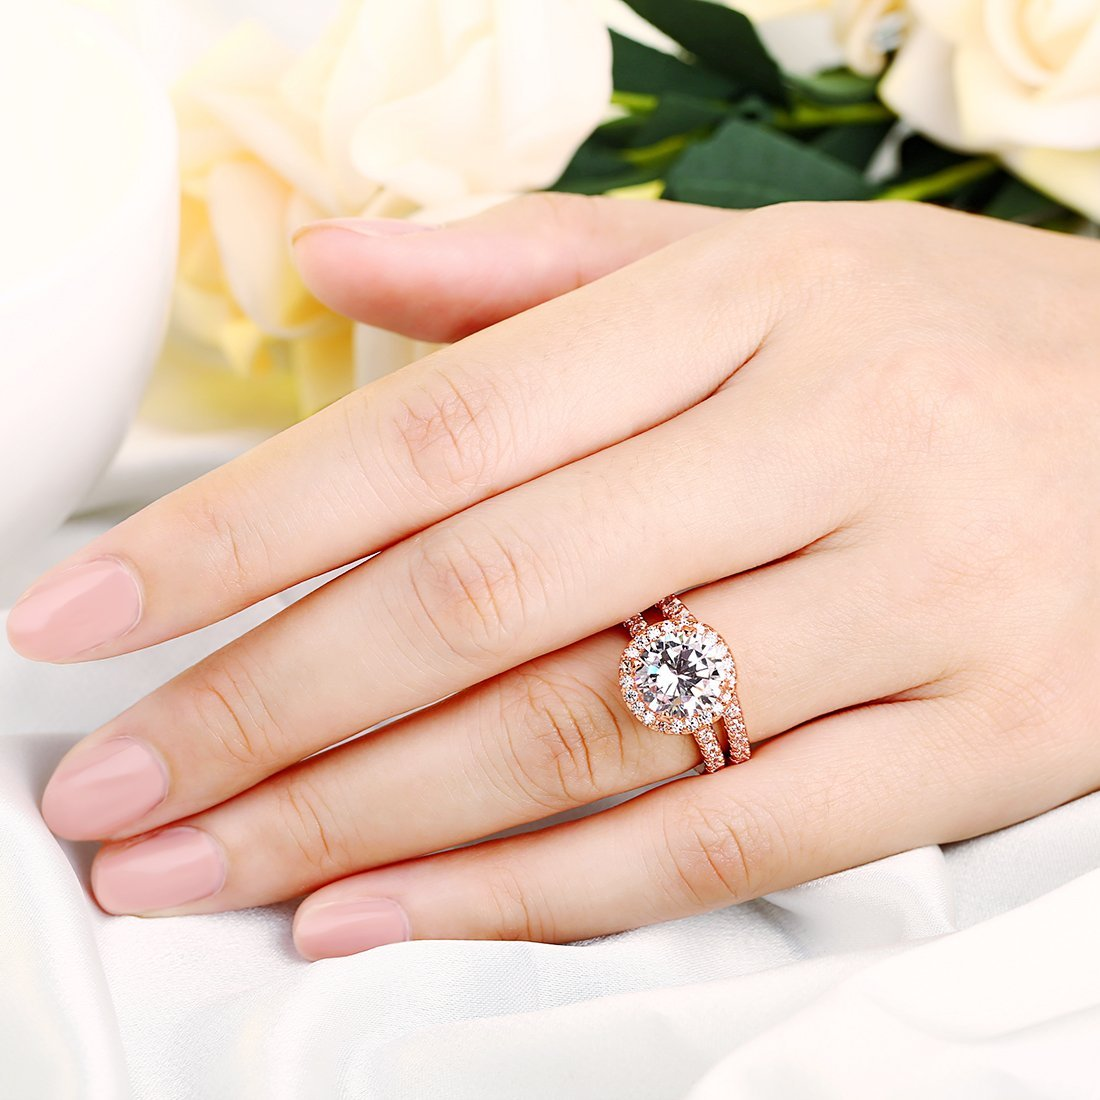 3 Carat Round CZ Solitaire 2 Pieces Ring Set for Women, Halo Style Rose Gold Plated Size 9 by Shengtai (Image #2)